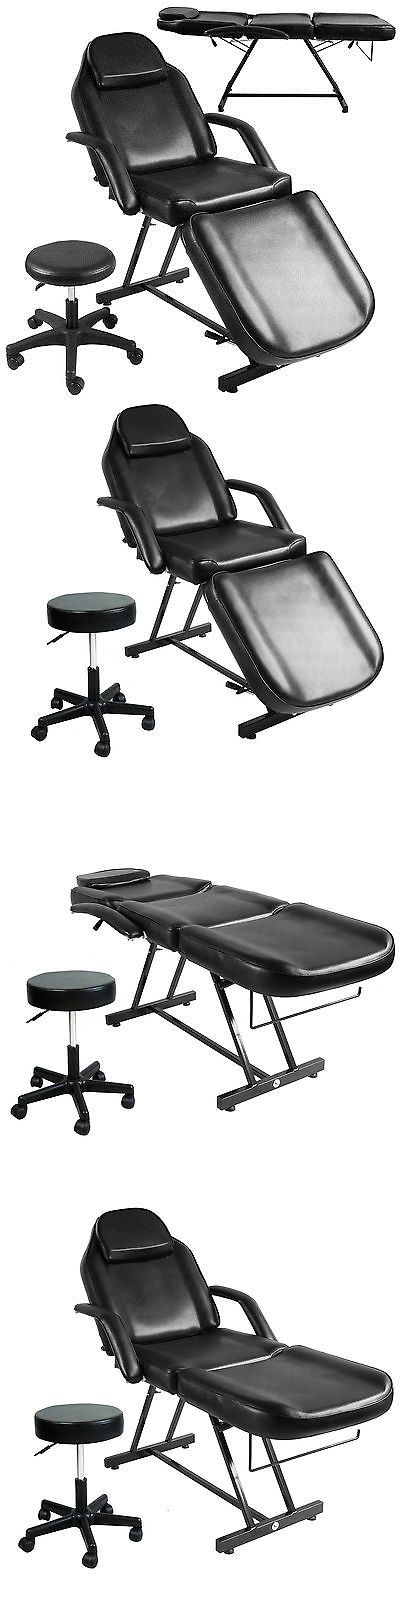 Massage Tables and Chairs: Adjustable Hydraulic Massage Bed Chair W/Stool Beauty Spa Tattoo Salon Equipment BUY IT NOW ONLY: $160.9